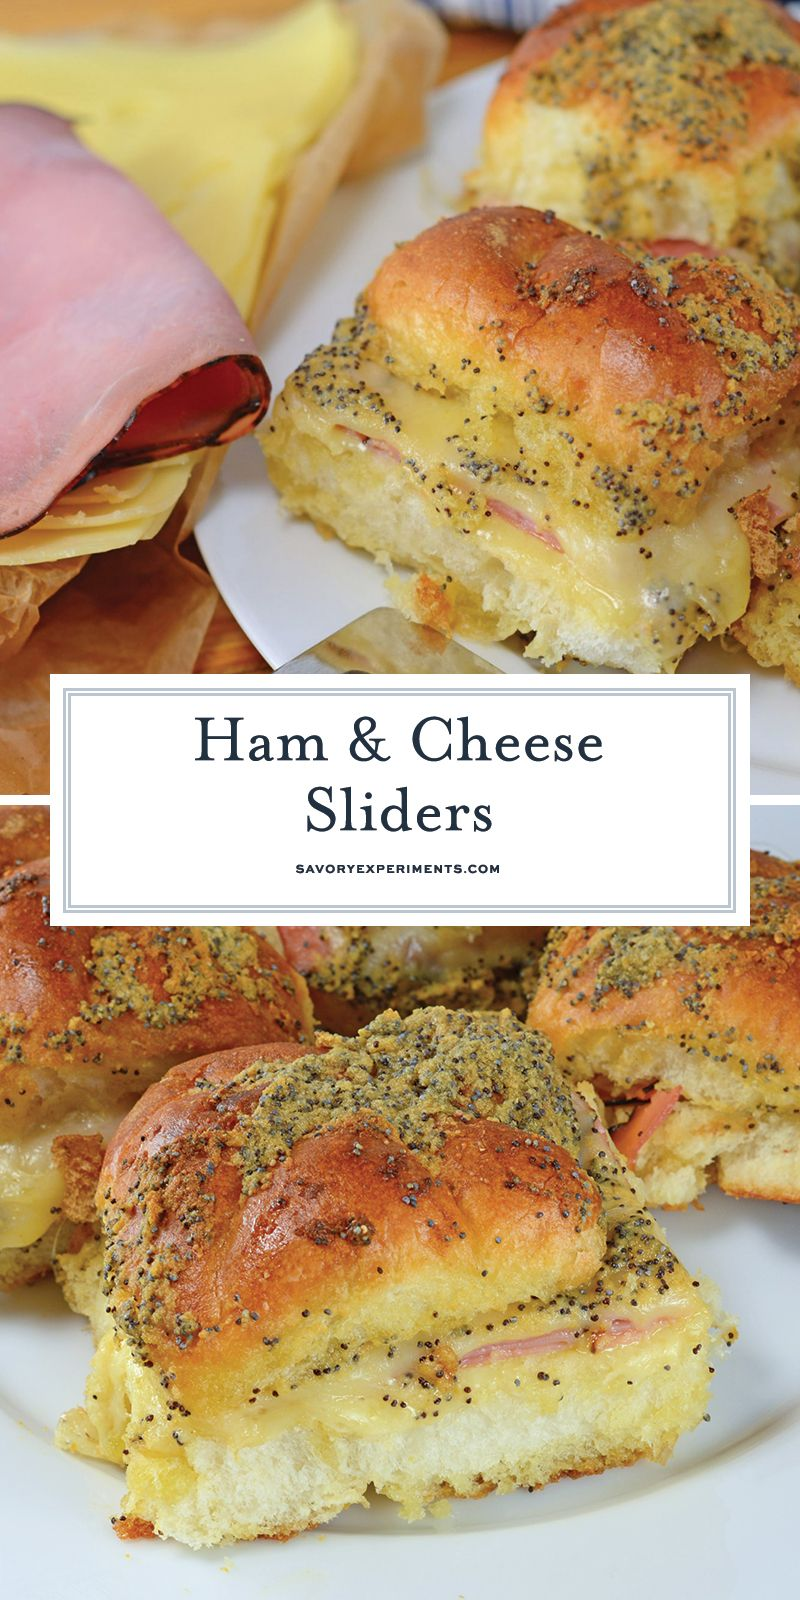 These Ham and Cheese sliders are made with delicious honey ham and Swiss cheese on Hawaiian Rolls. So good there'll never be any leftovers! #hamandcheesesliders #hamsliders #hawaiianrollsliders www.savoryexperiments.com #breakfastslidershawaiianrolls